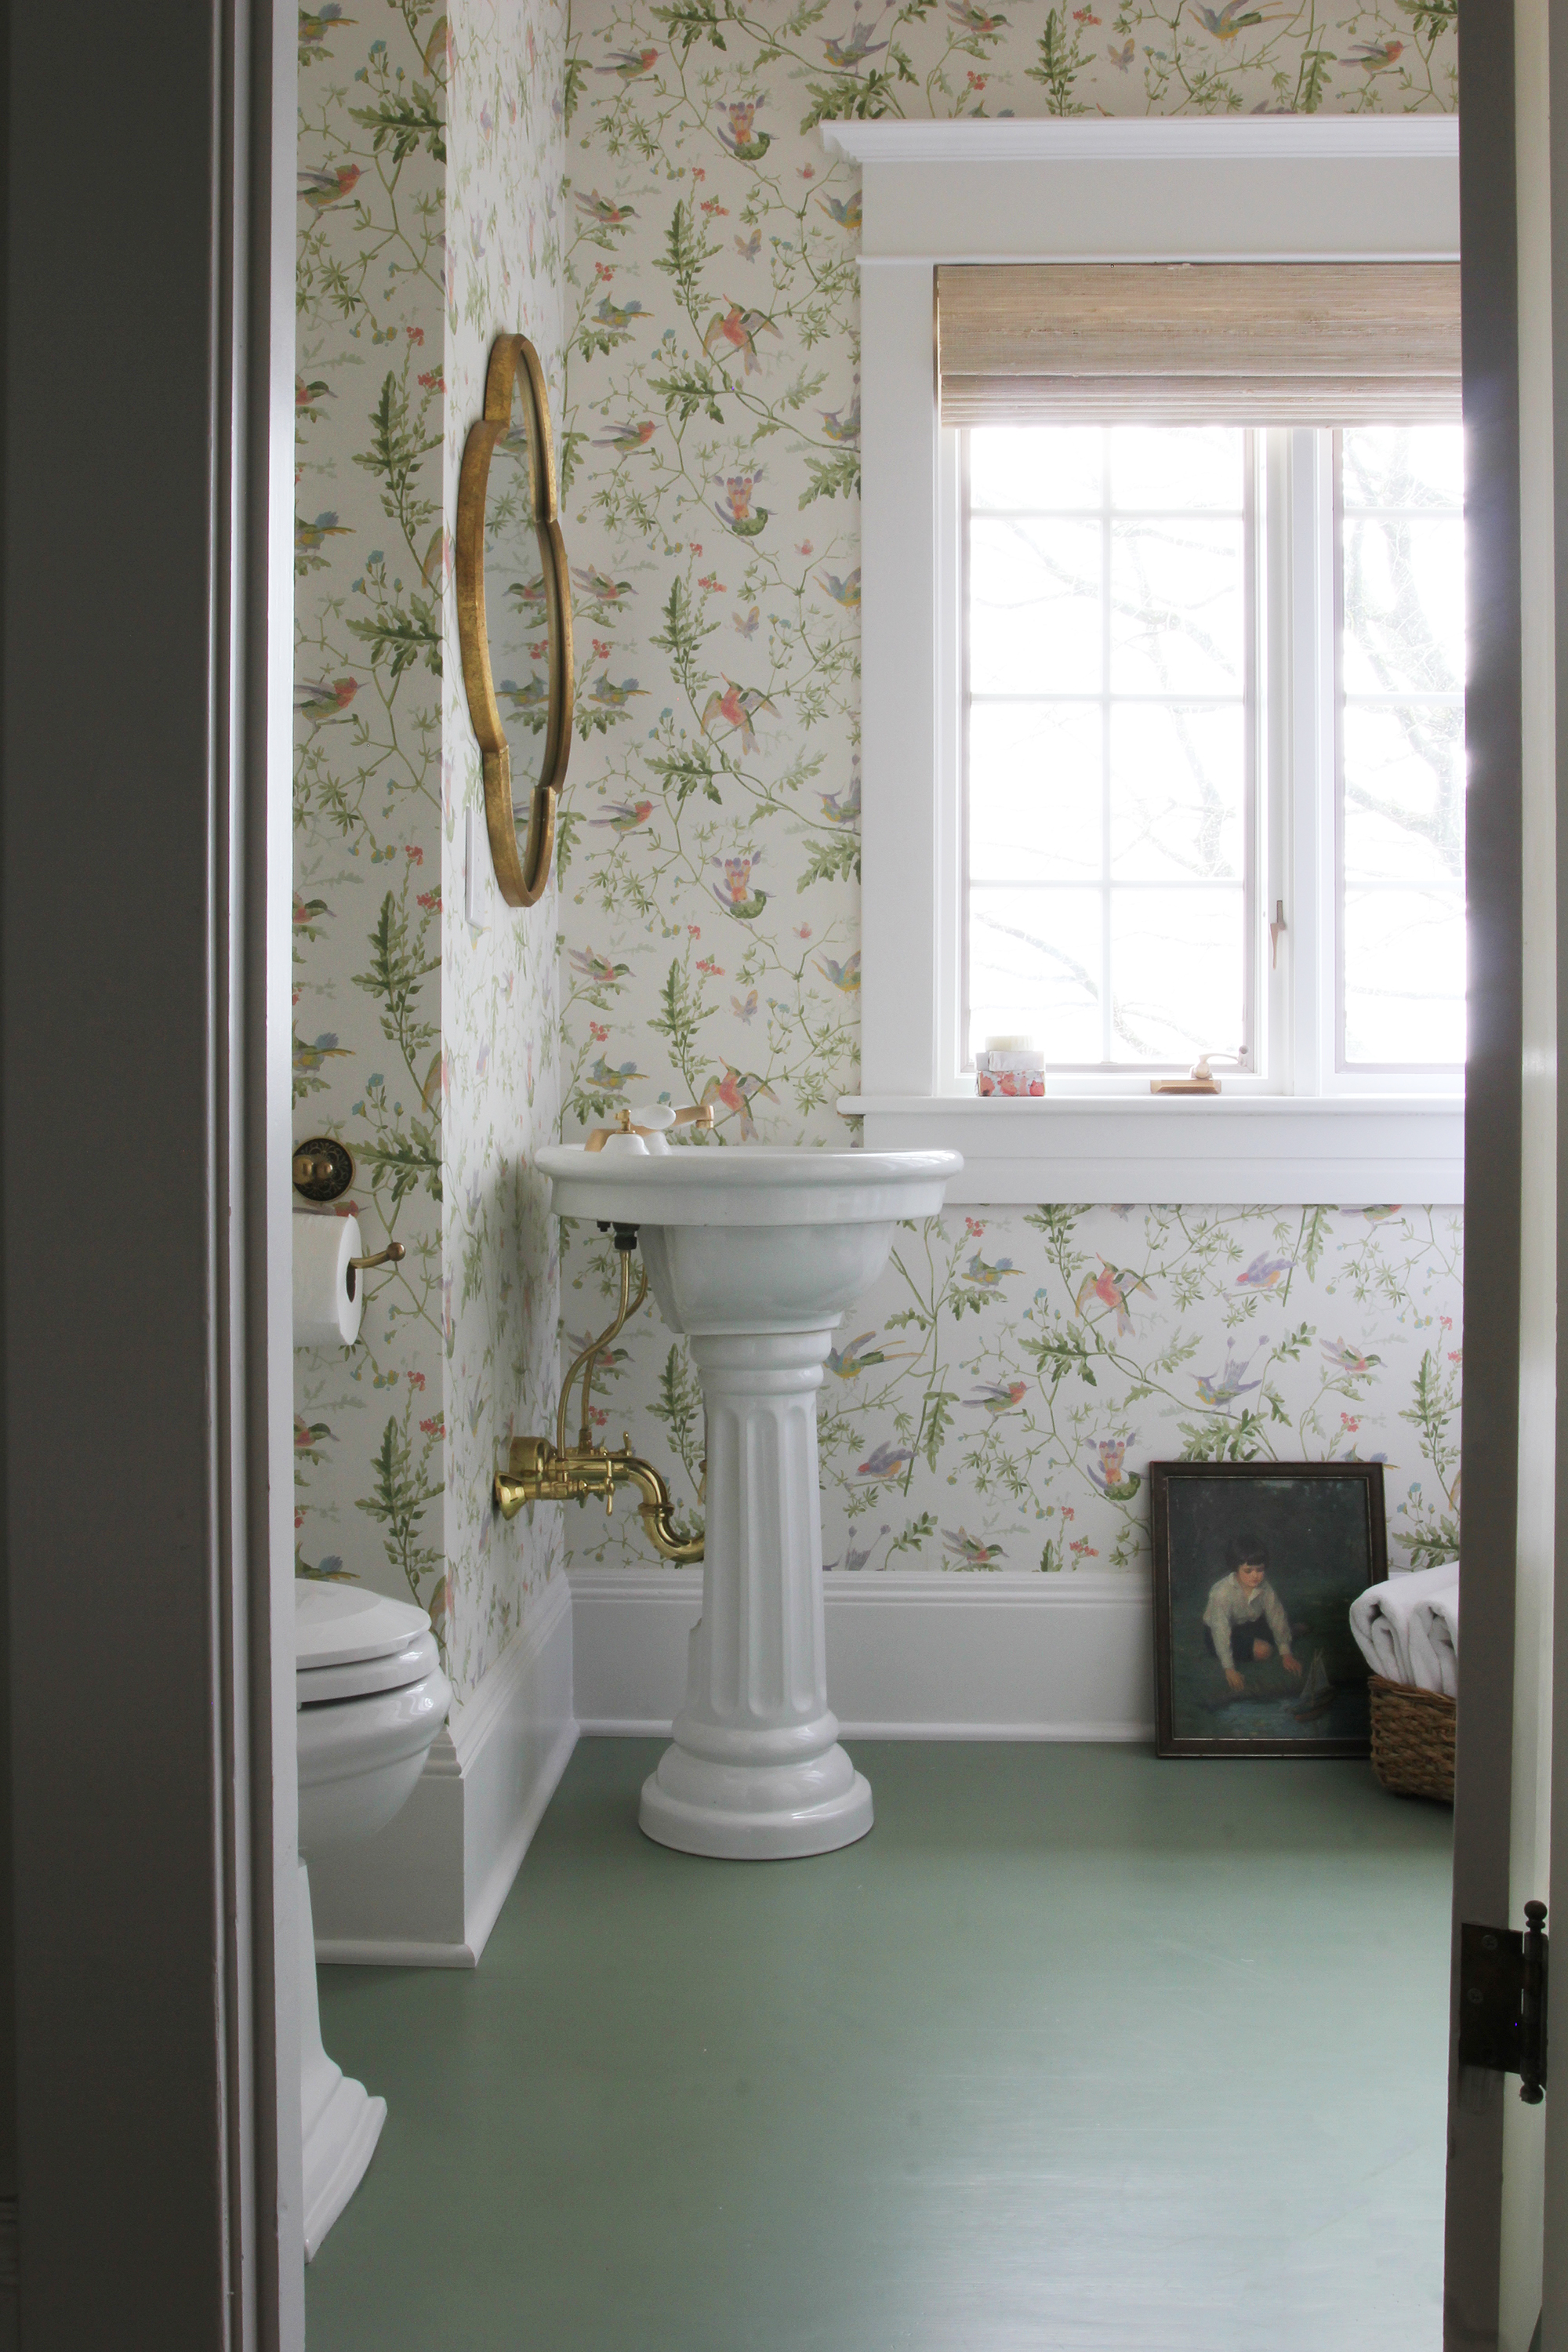 The Grit and Polish - Winnies Bathroom from door.jpg